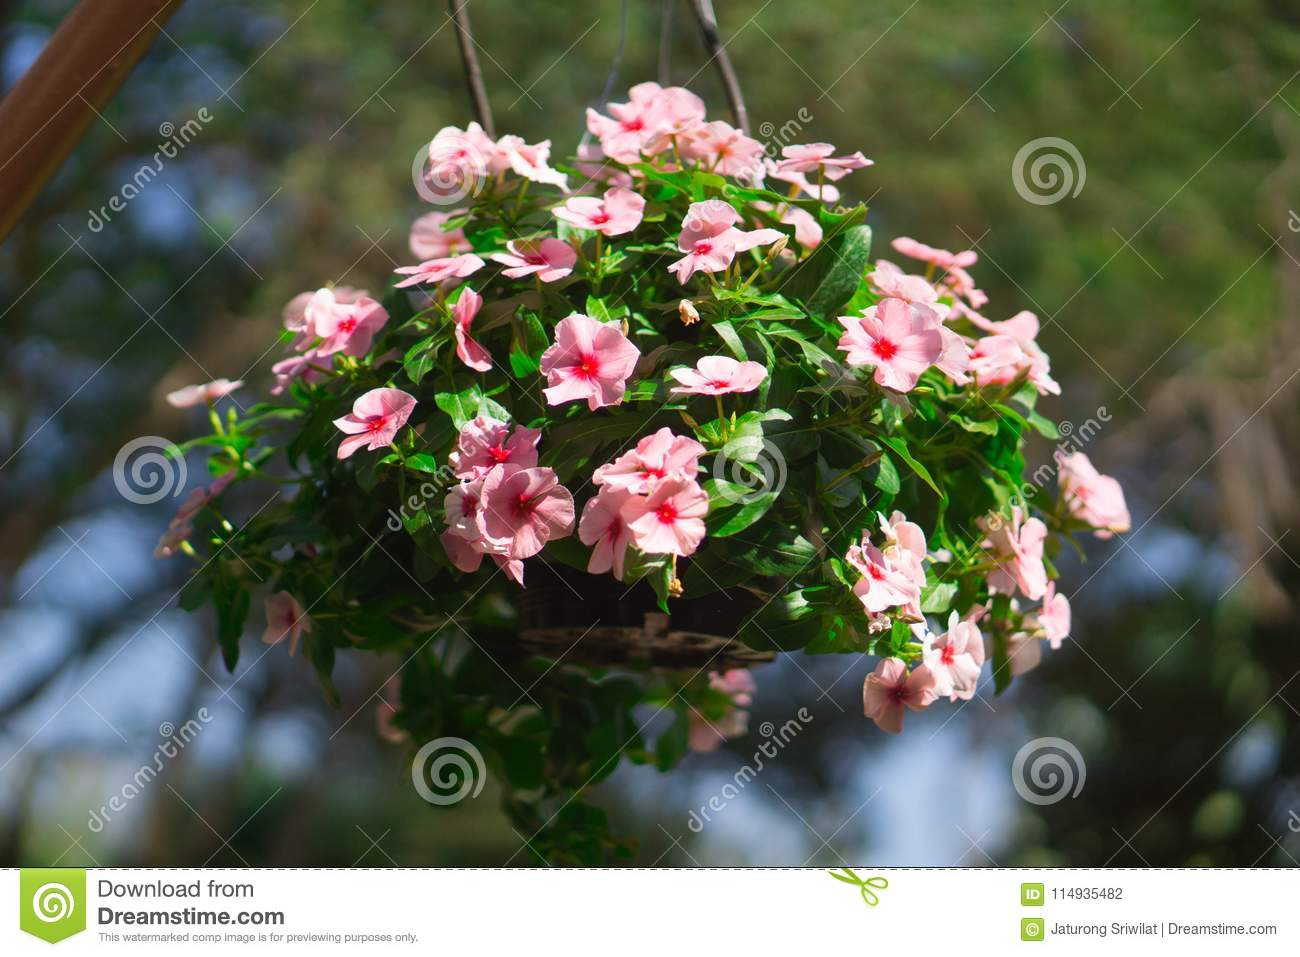 Beautiful Flowers In Hanging Flower Pots Stock Photo Image Of